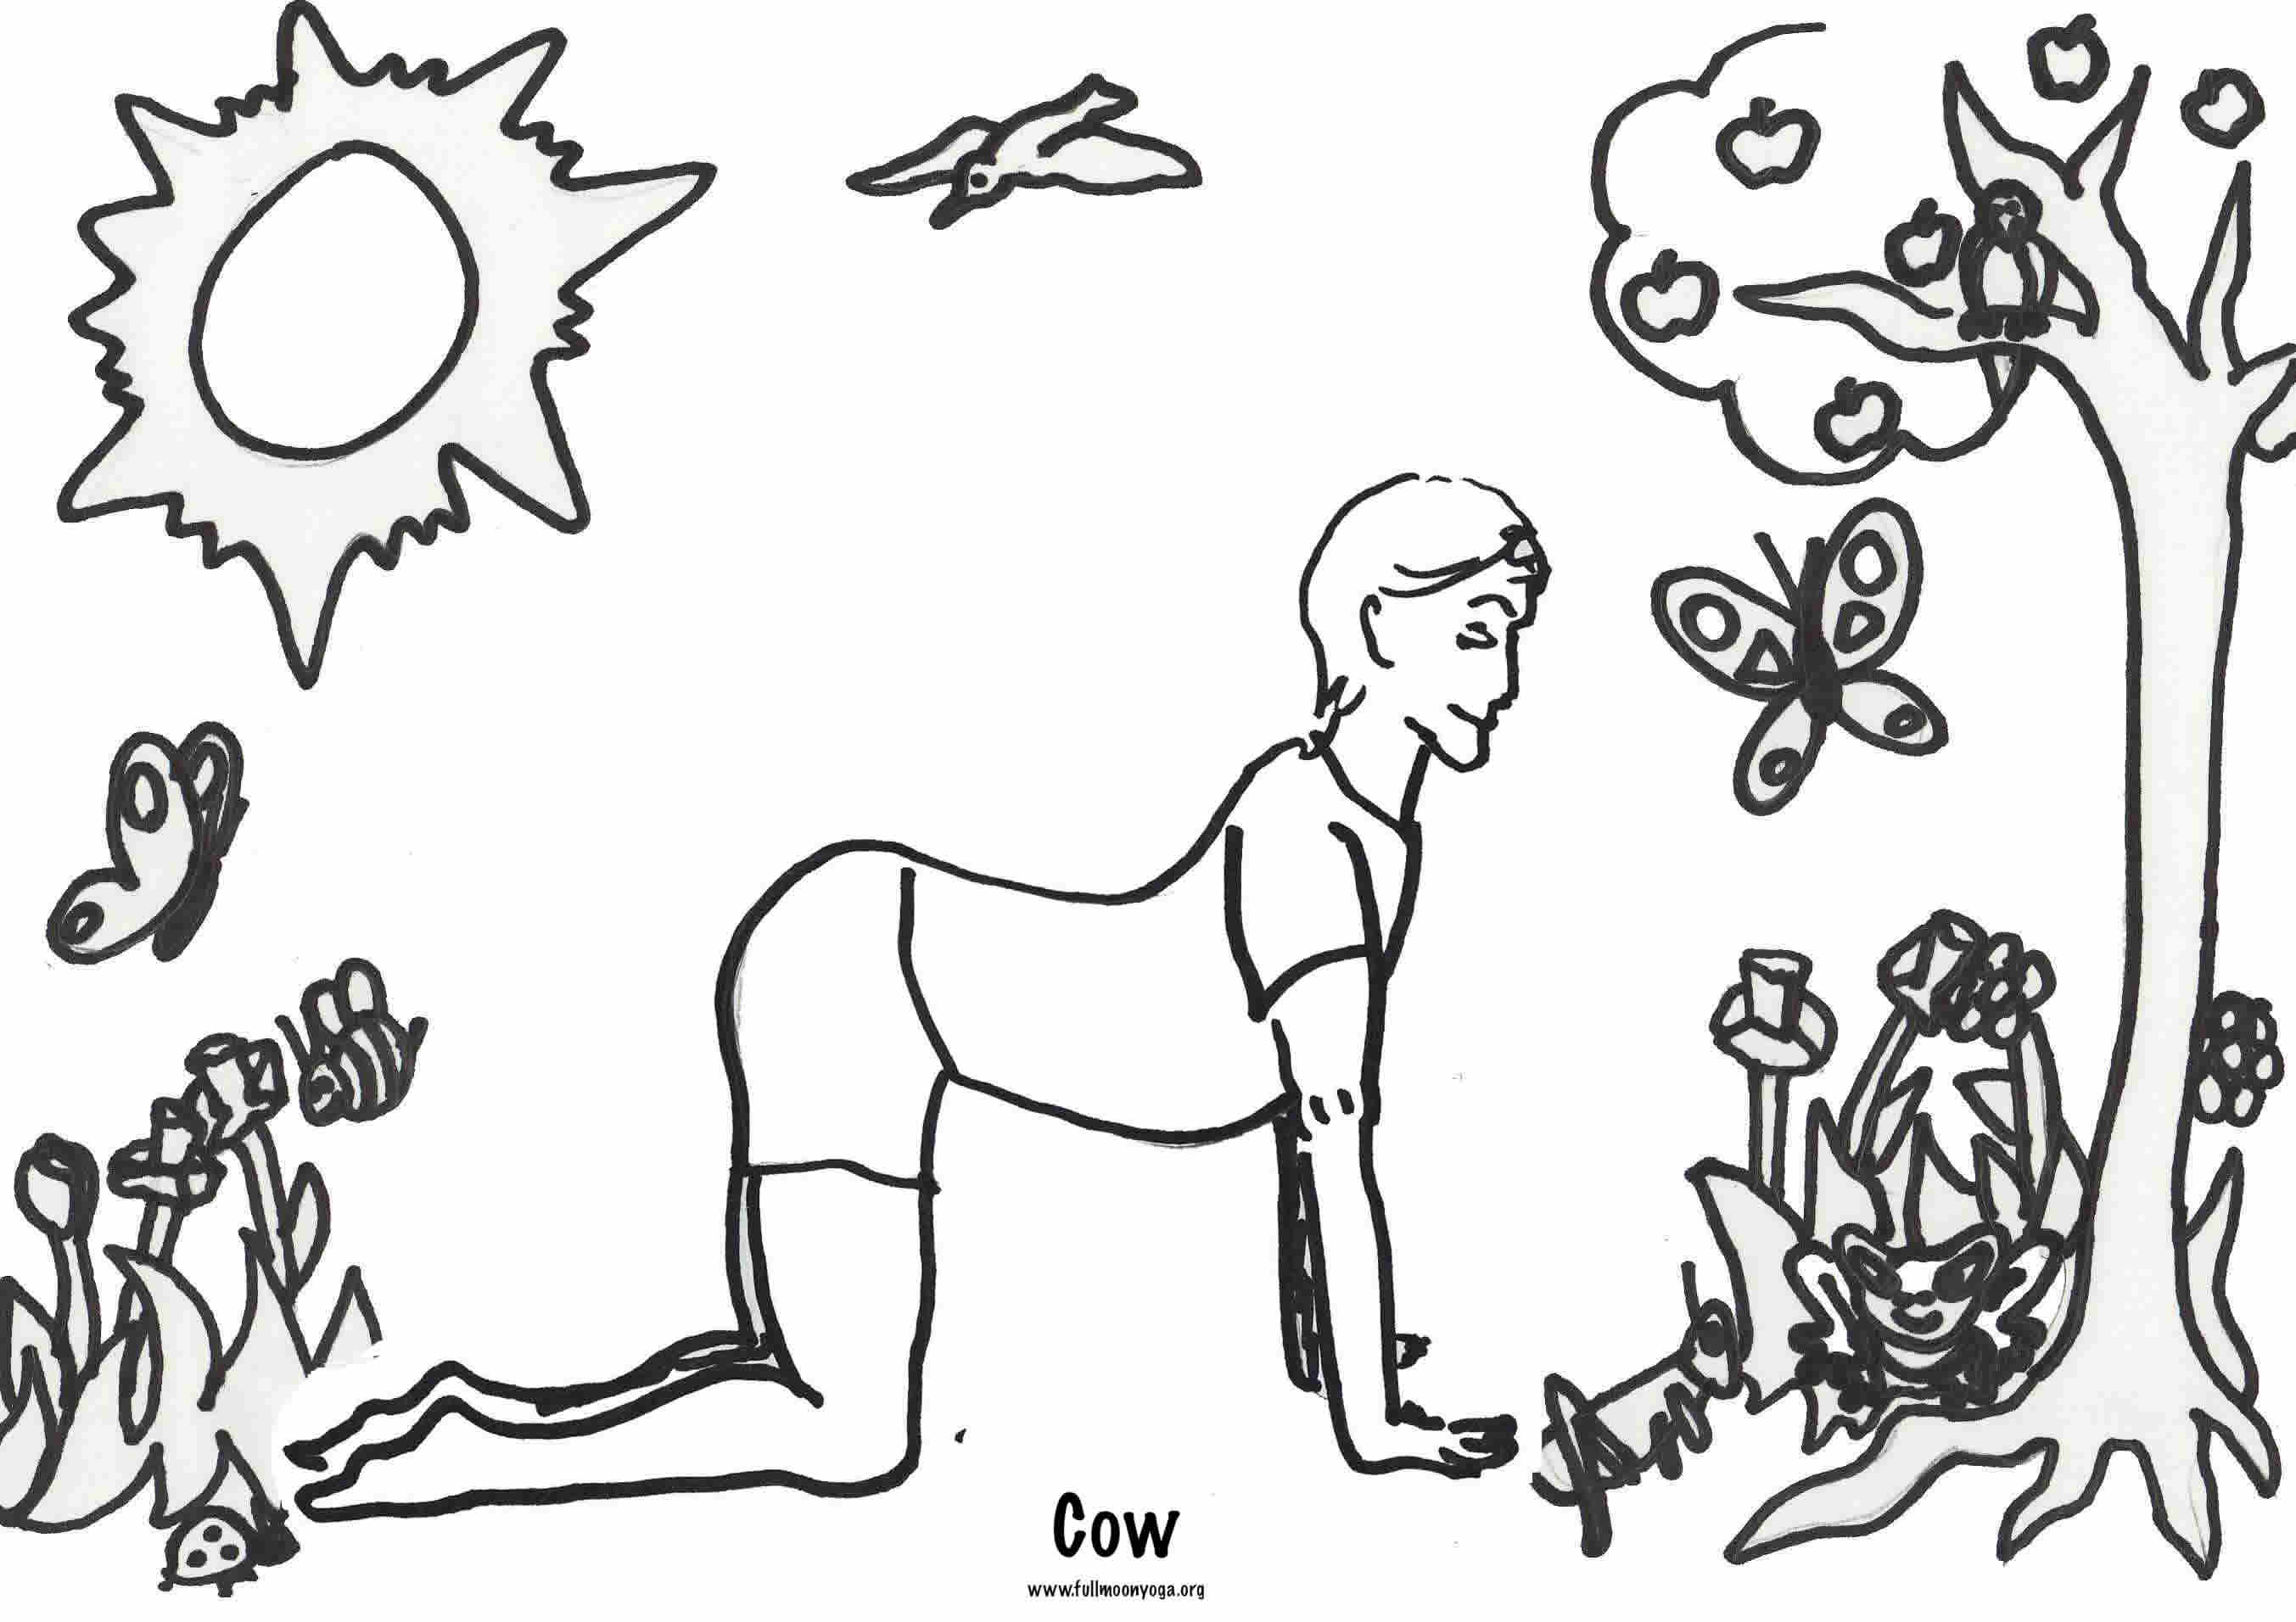 Coloring Pages For Yoga : Games fullmoonyoga